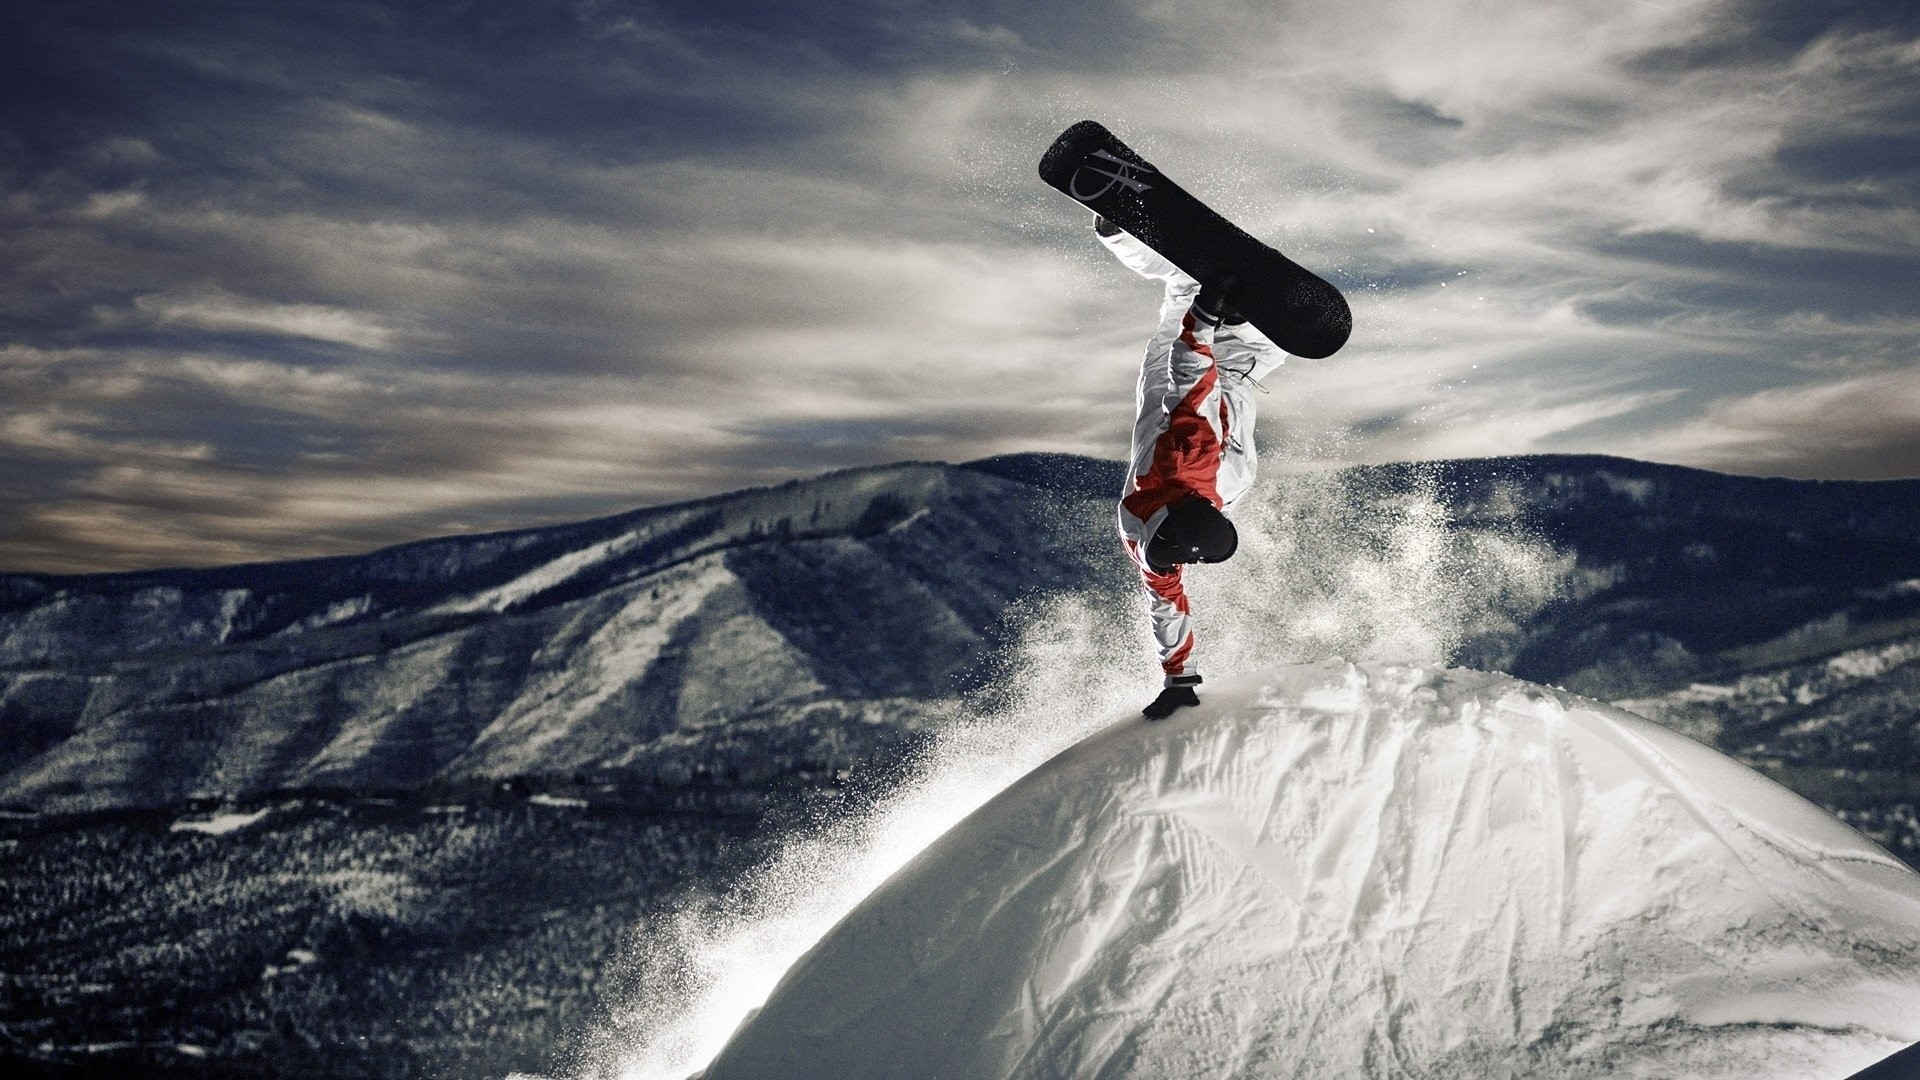 Hd snowboarding wallpaper 72 images 1920x1080 snowboarding hd wallpaper background id183974 voltagebd Image collections